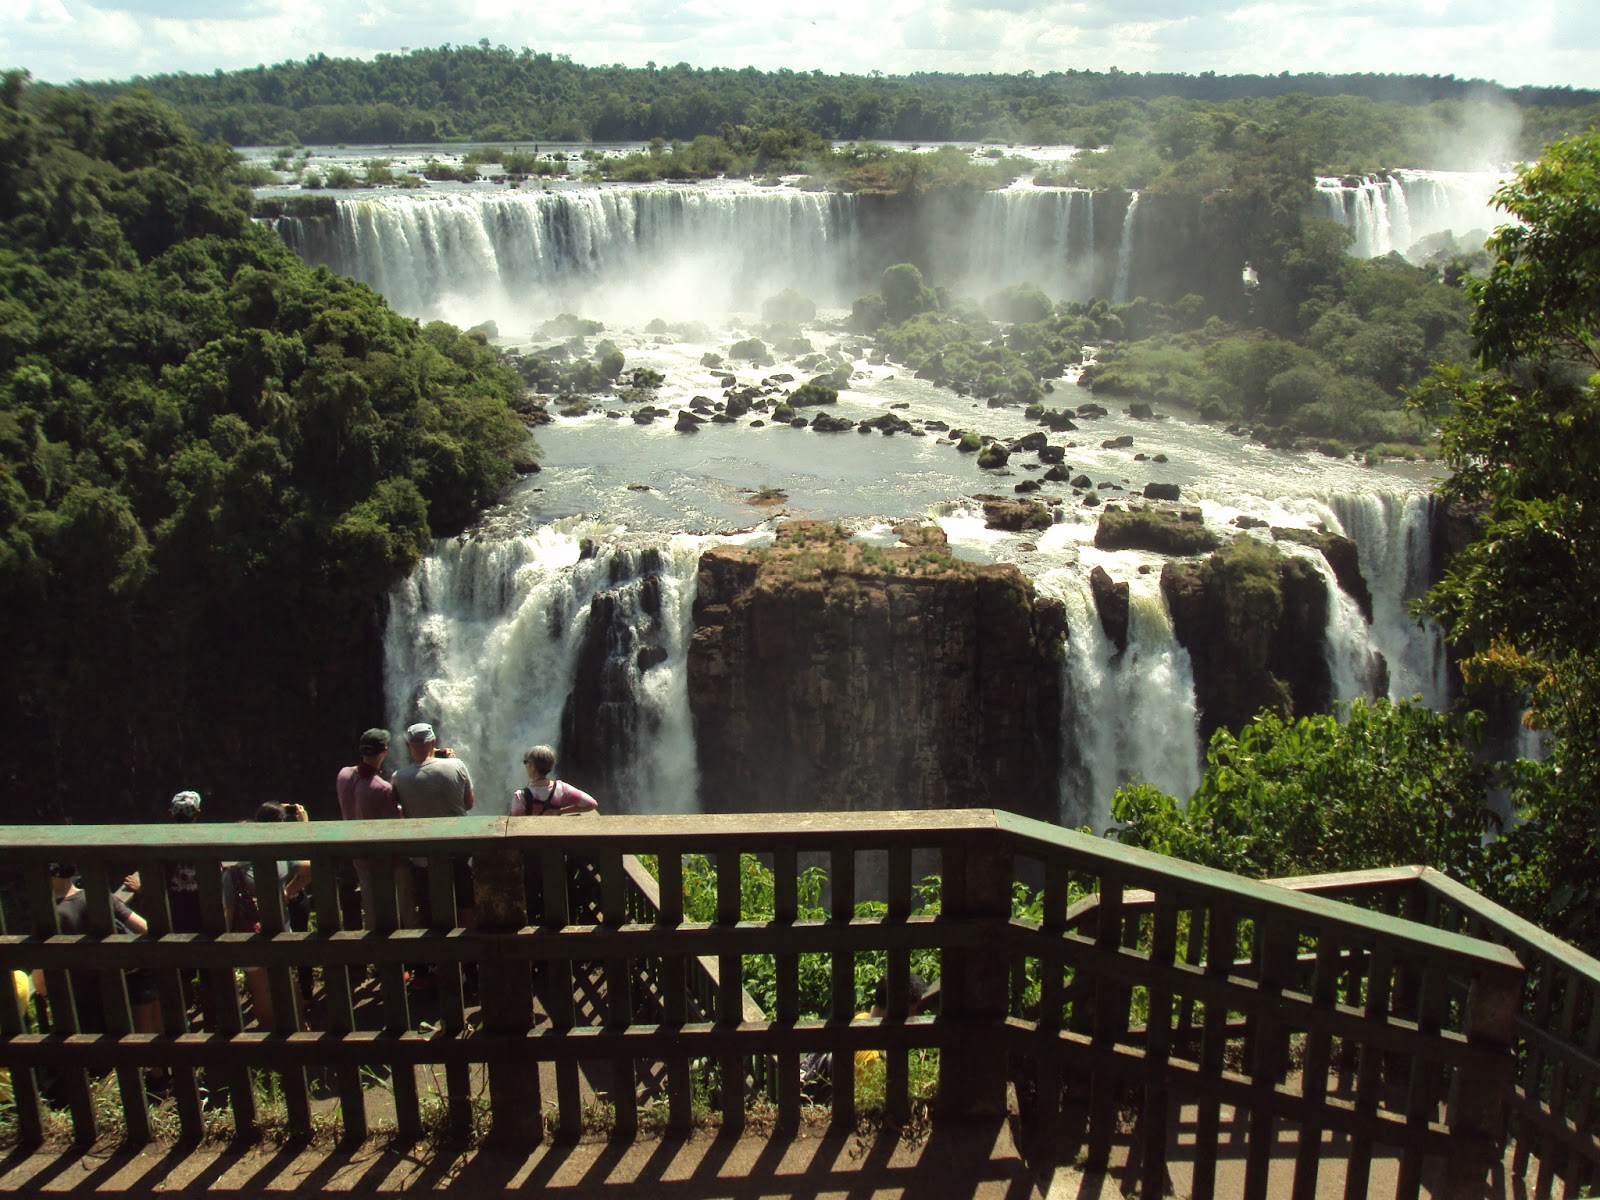 Foz do Iguaçu Cataratas